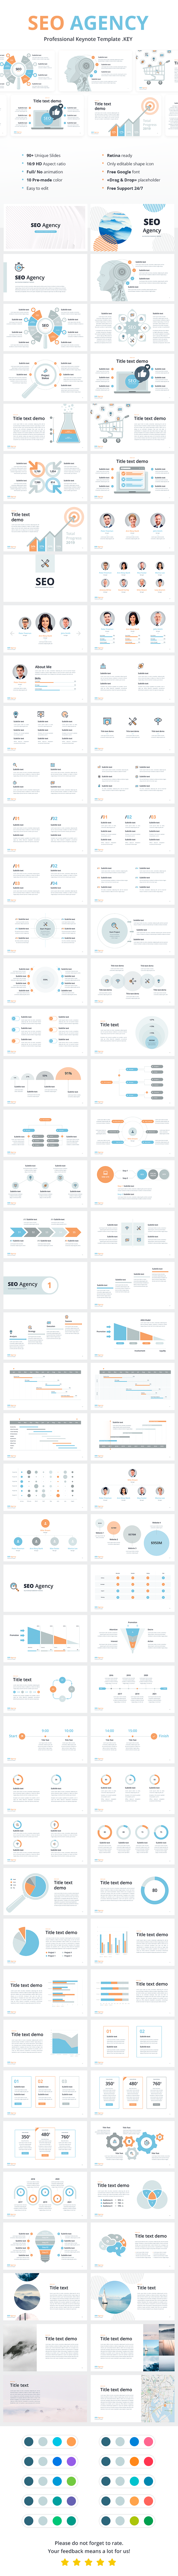 presentation-template-seo-agency